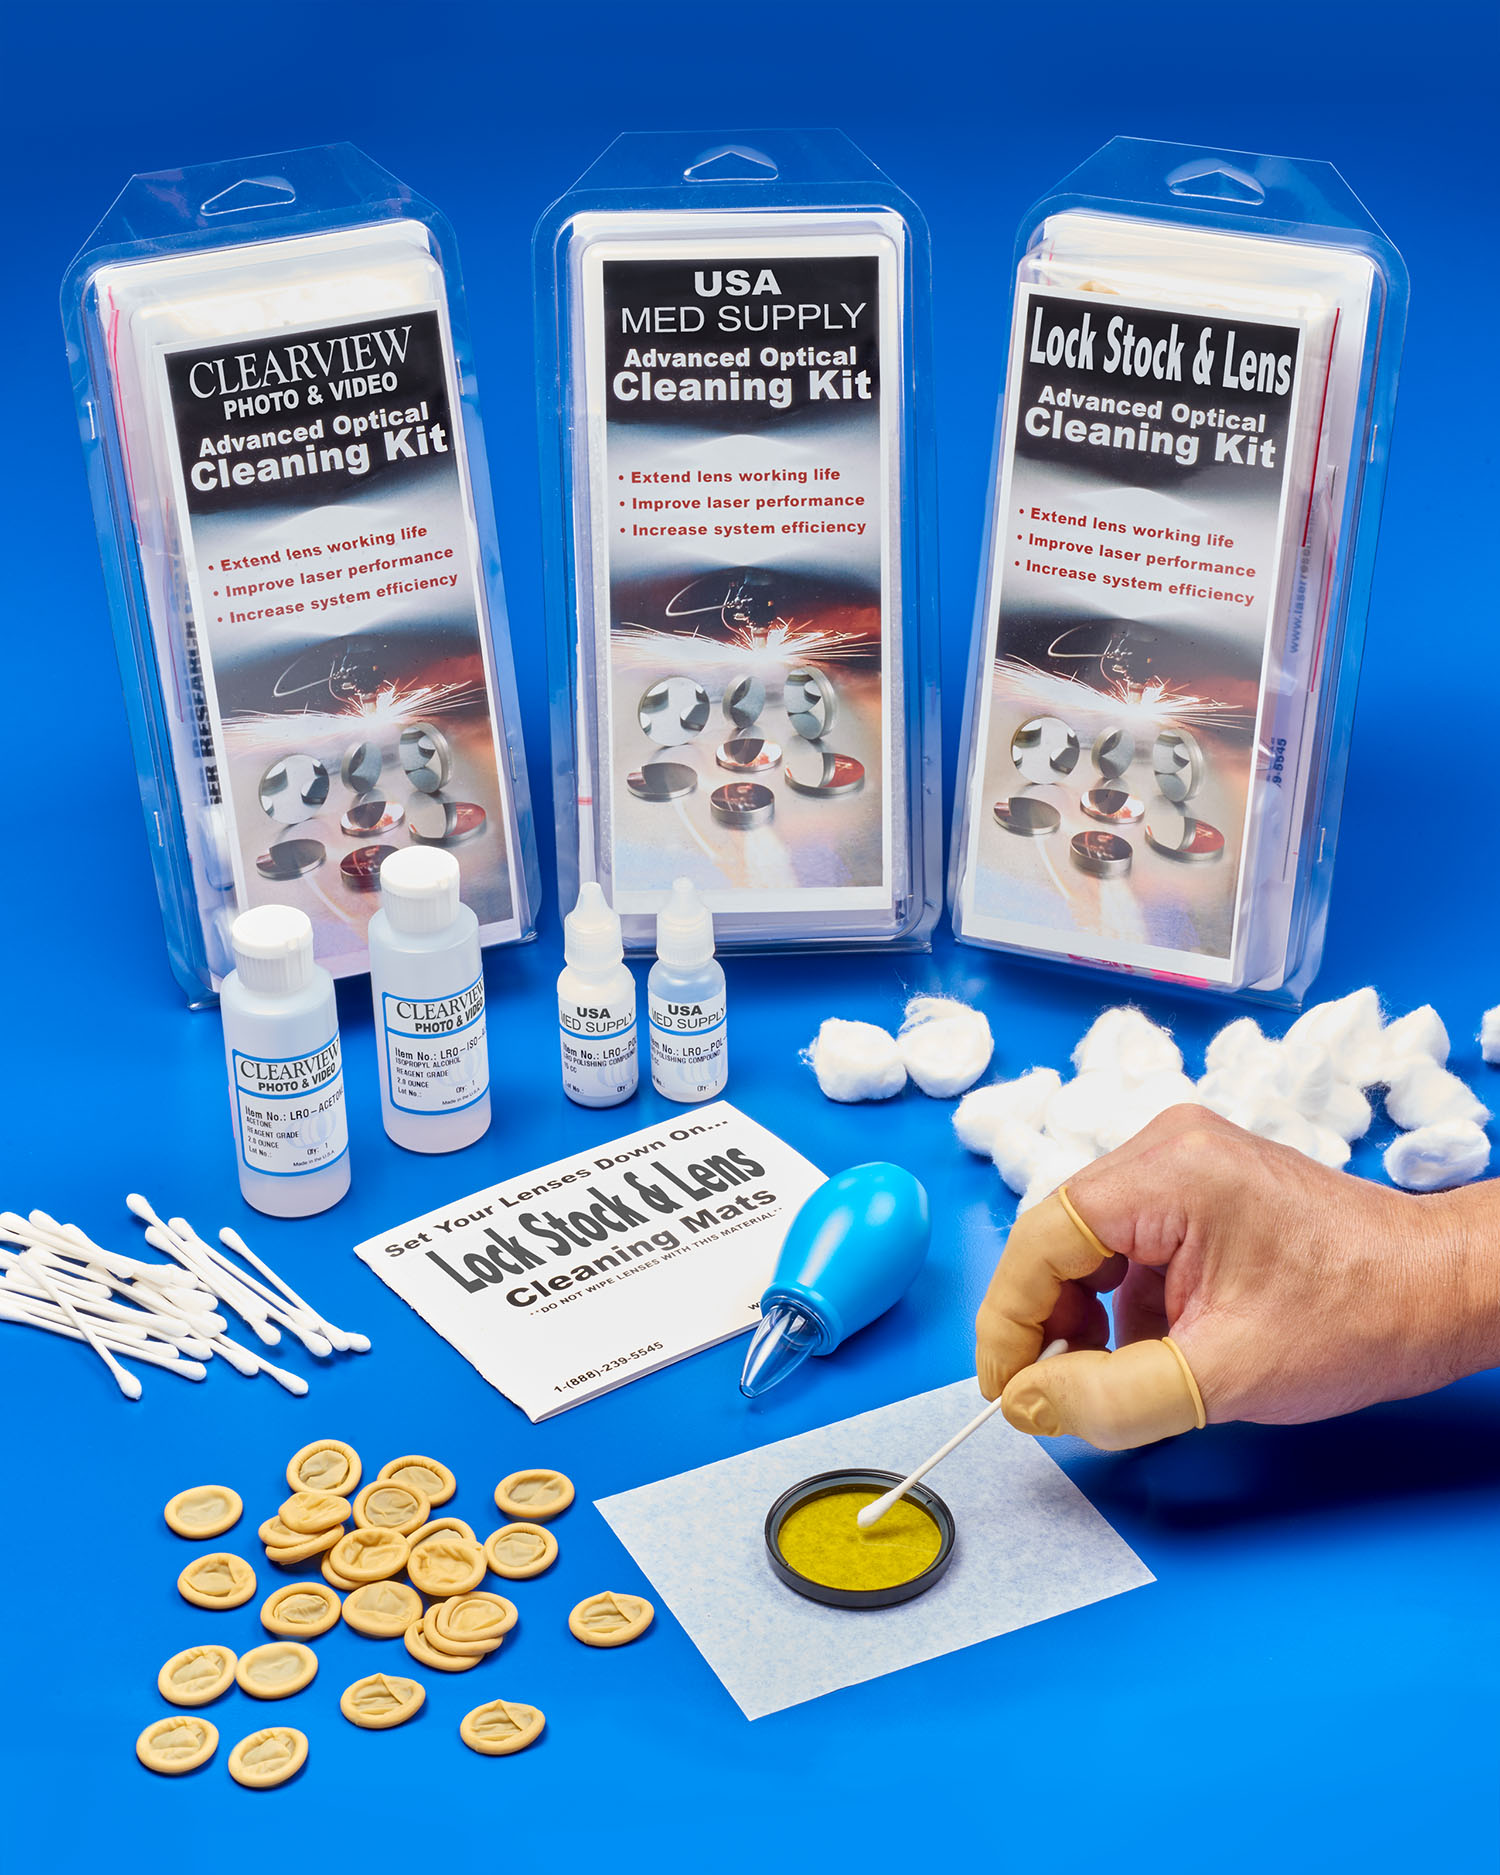 OPTICS CLEANING KIT PRIVATE LABELING IS INTRODUCED